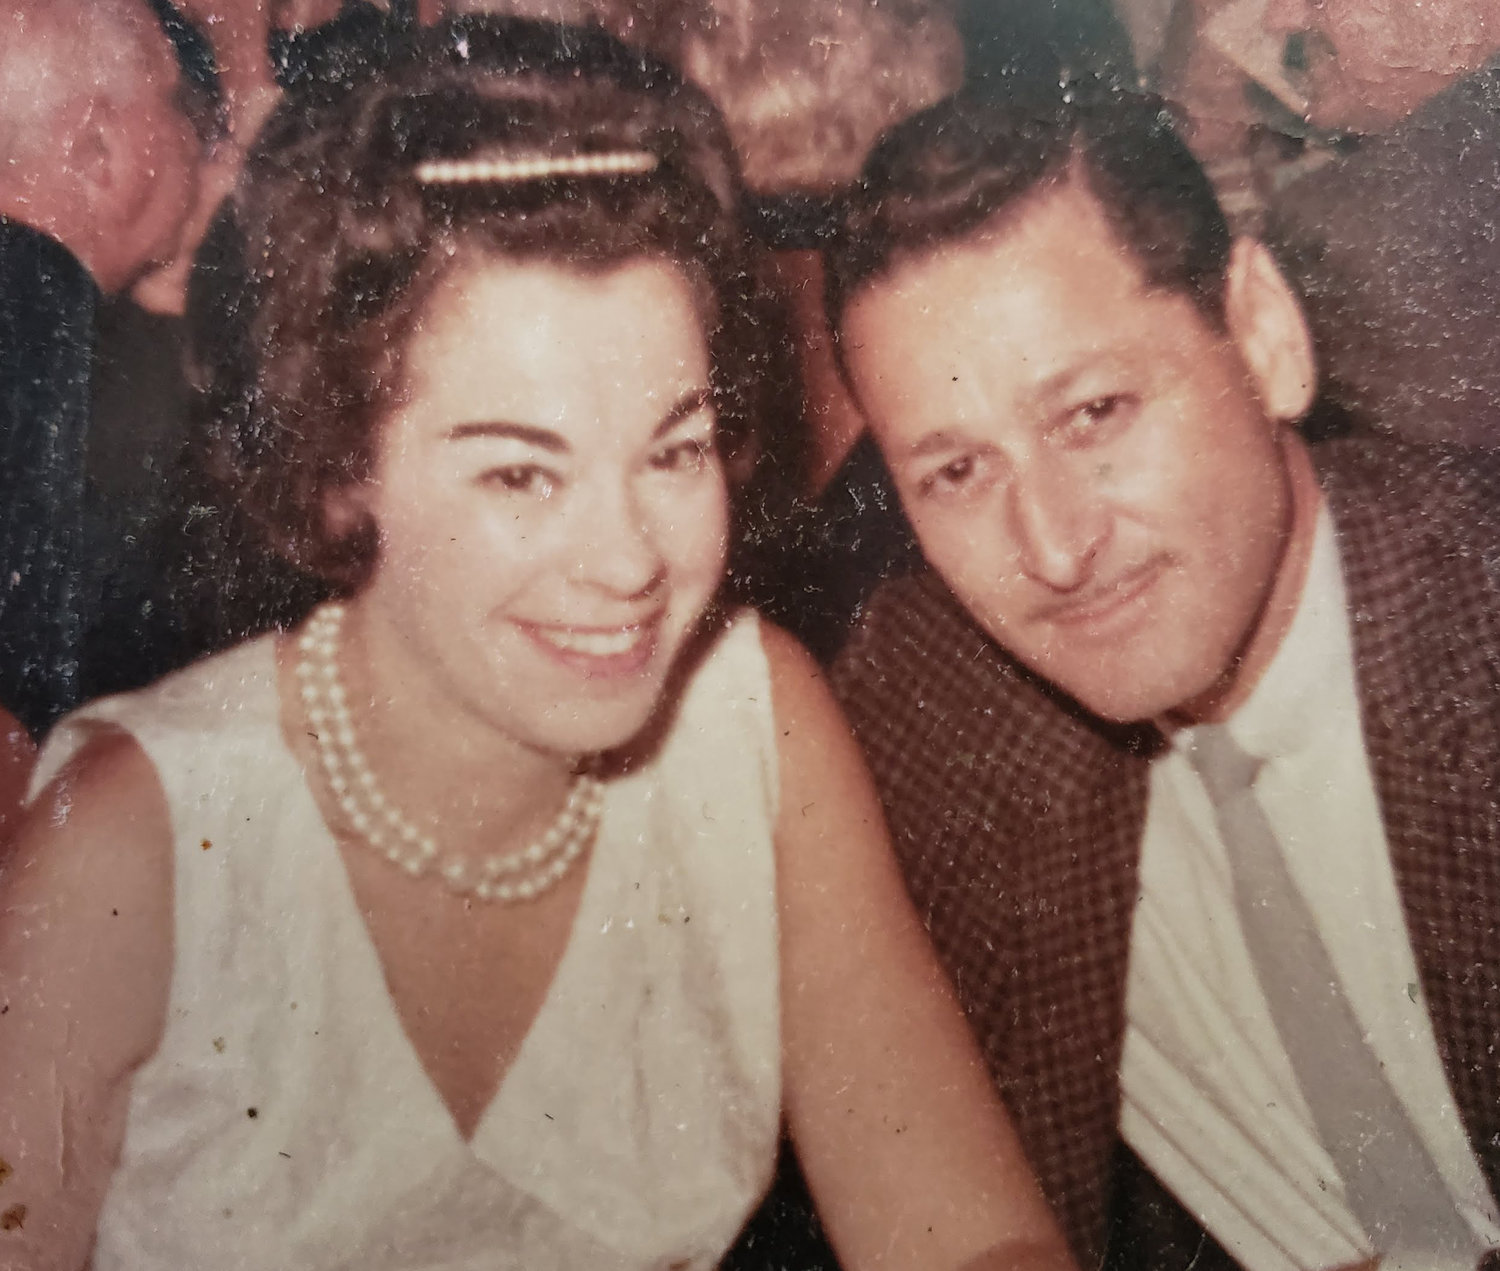 Blanche, left, and David Goodman when they first met in 1956.